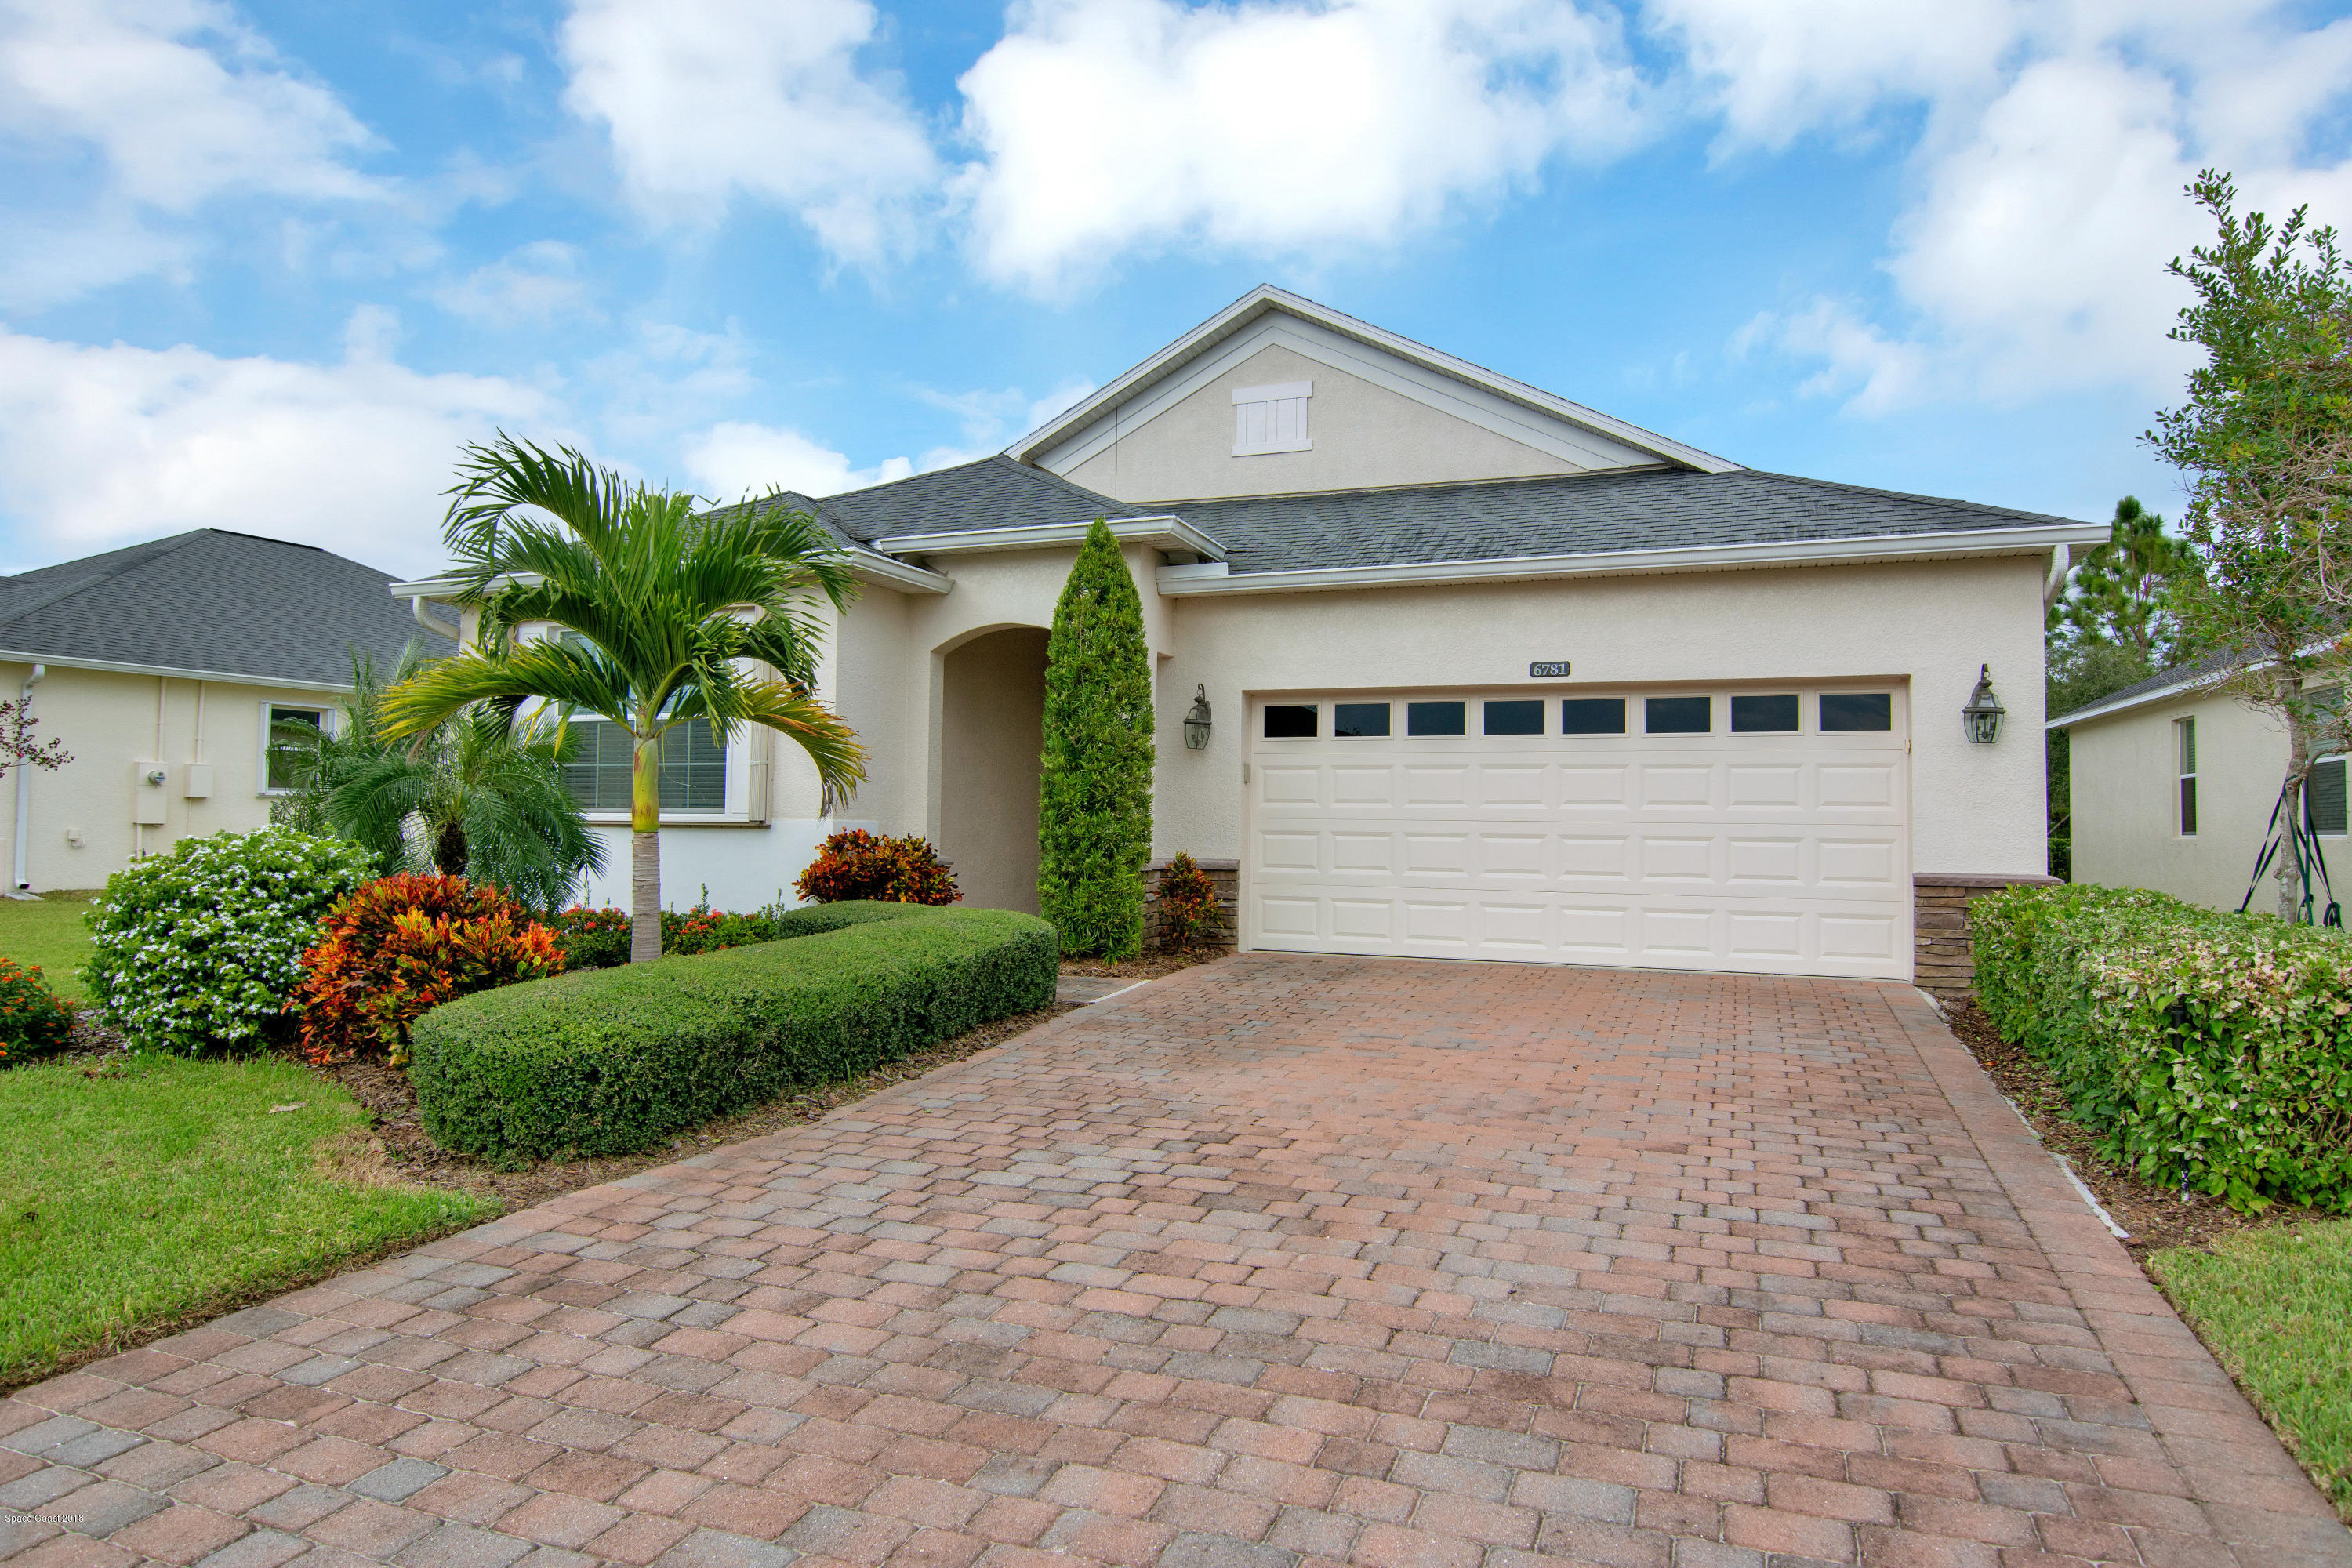 Property for Sale at 6781 Ringold 6781 Ringold Viera, Florida 32940 United States